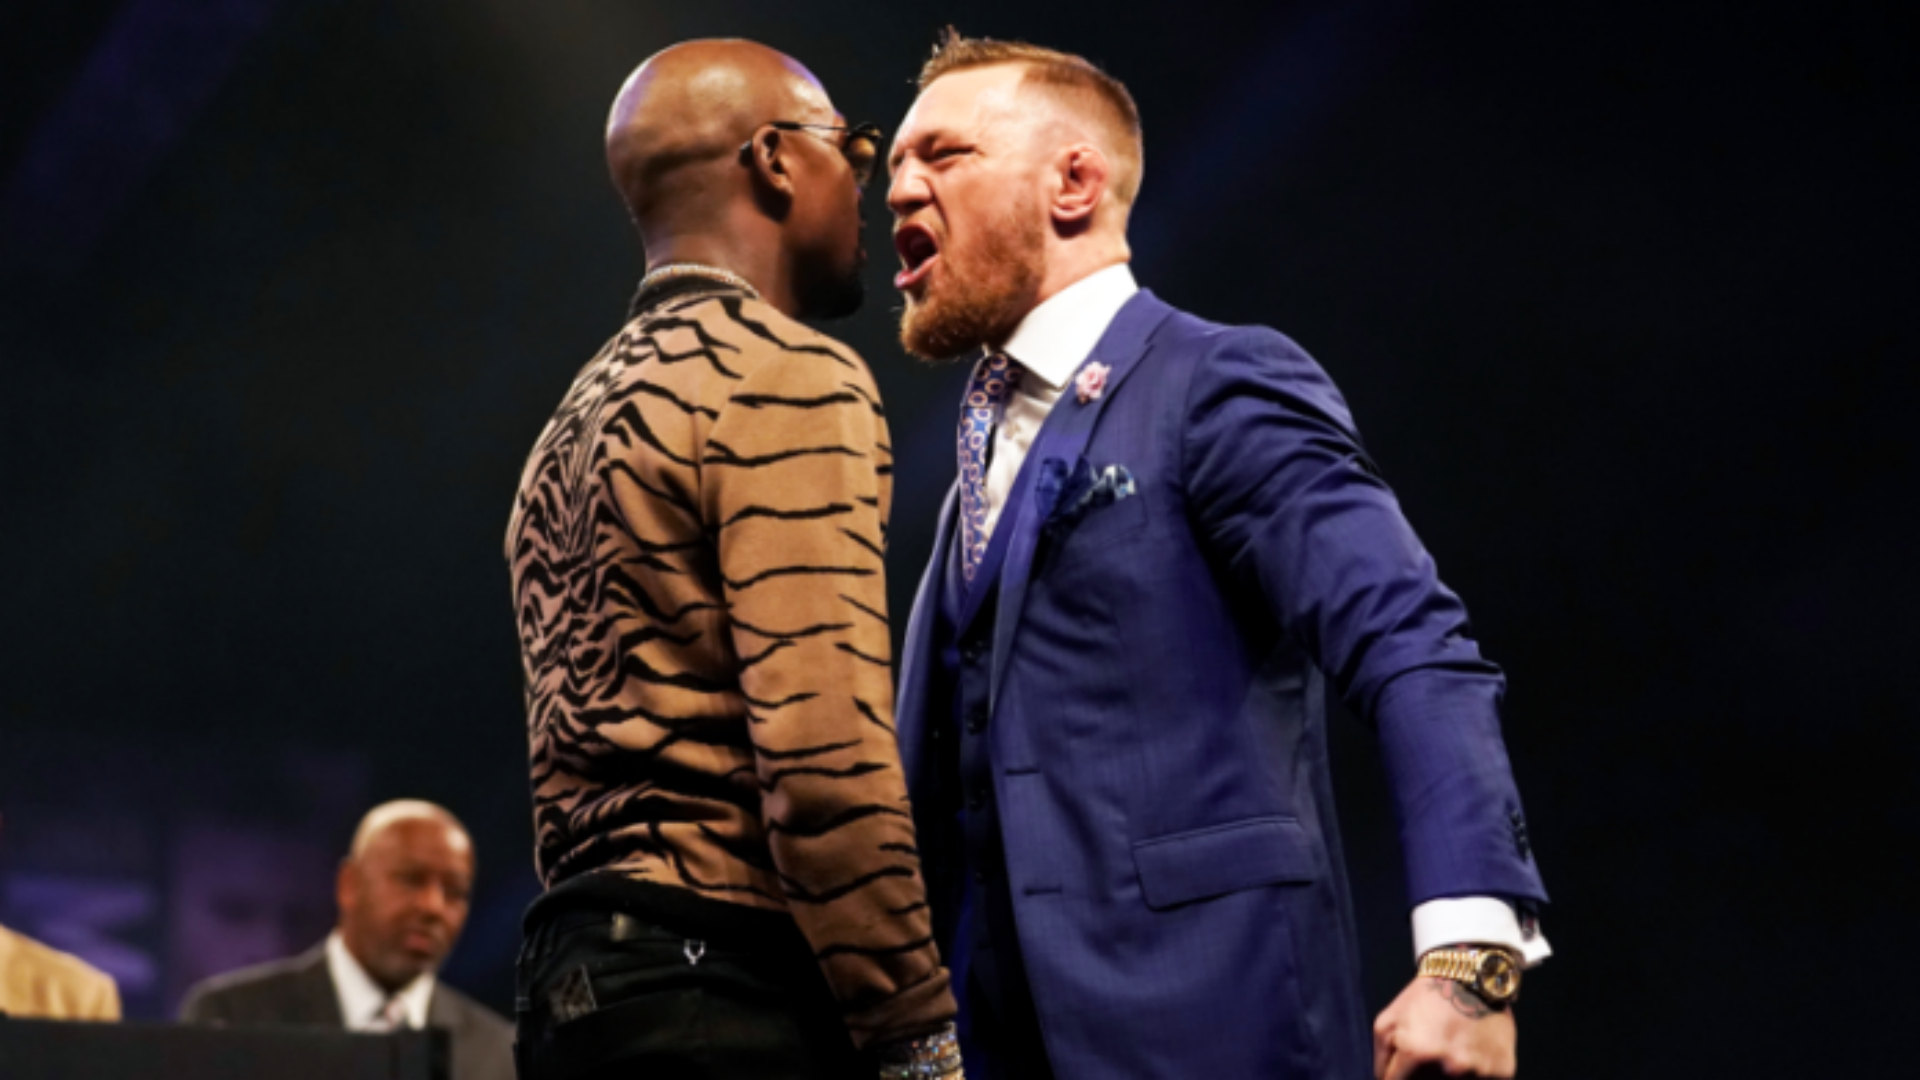 McGregor Fans React To Apparent Sparring Knockdown